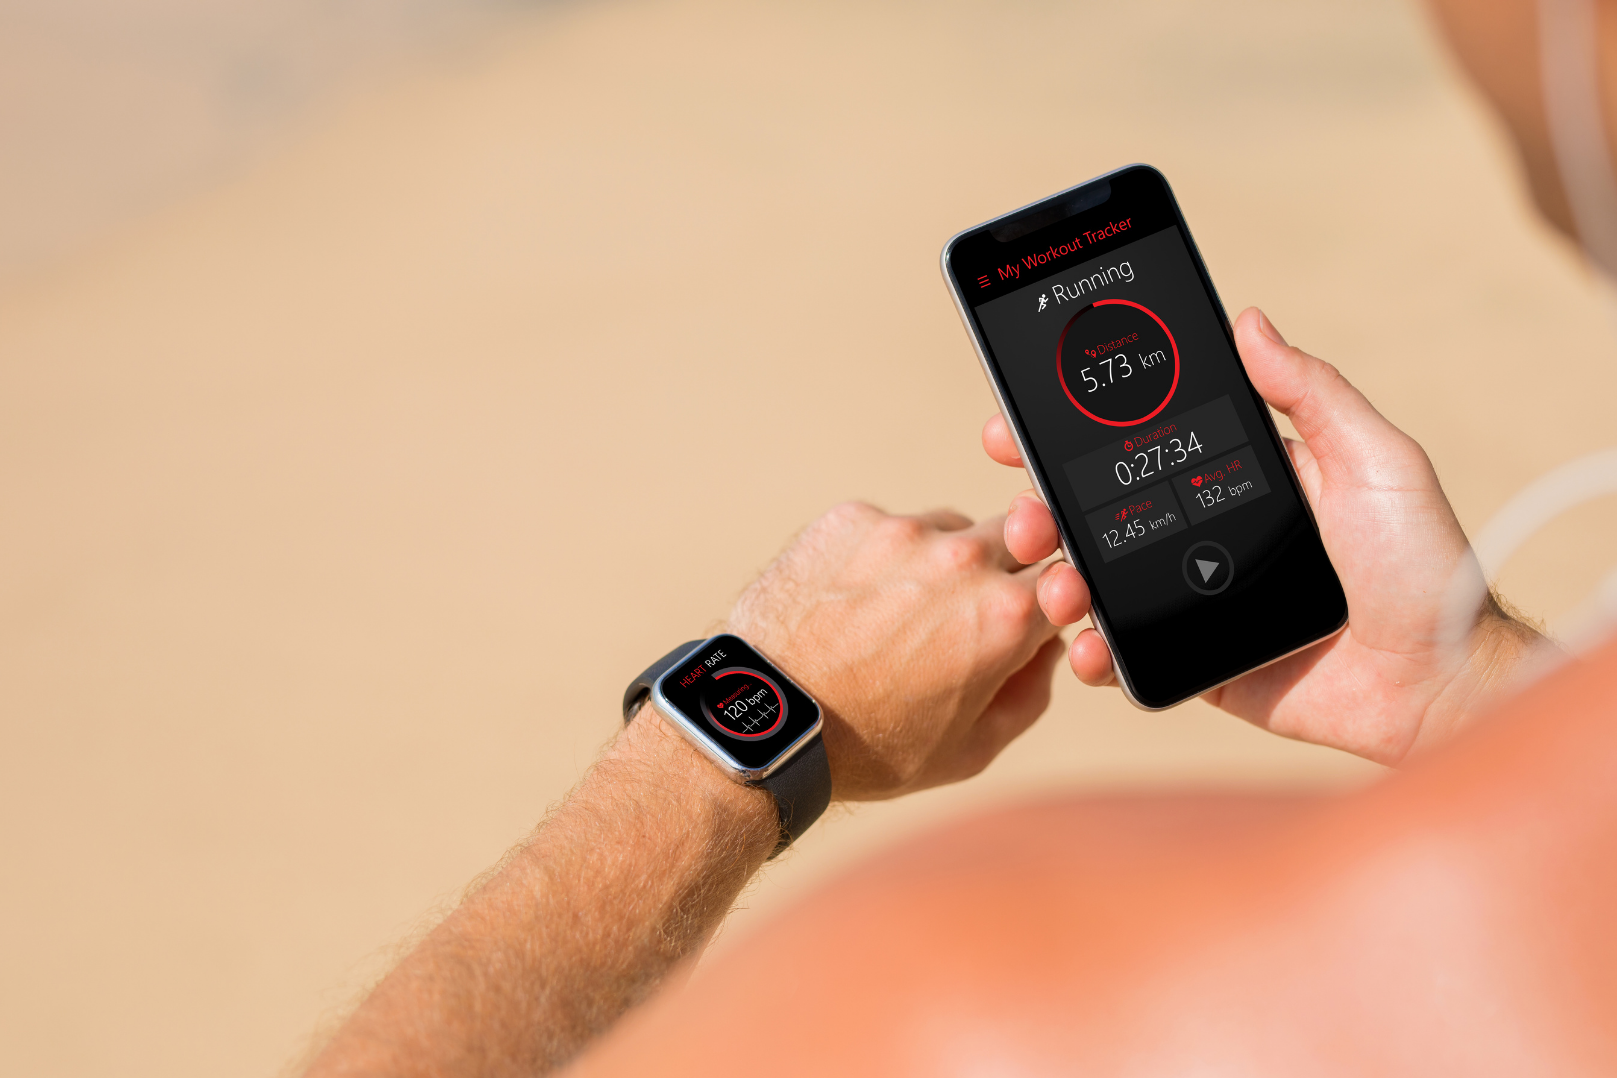 Tracking distance run and other fitness metrics using wearable fitness technology